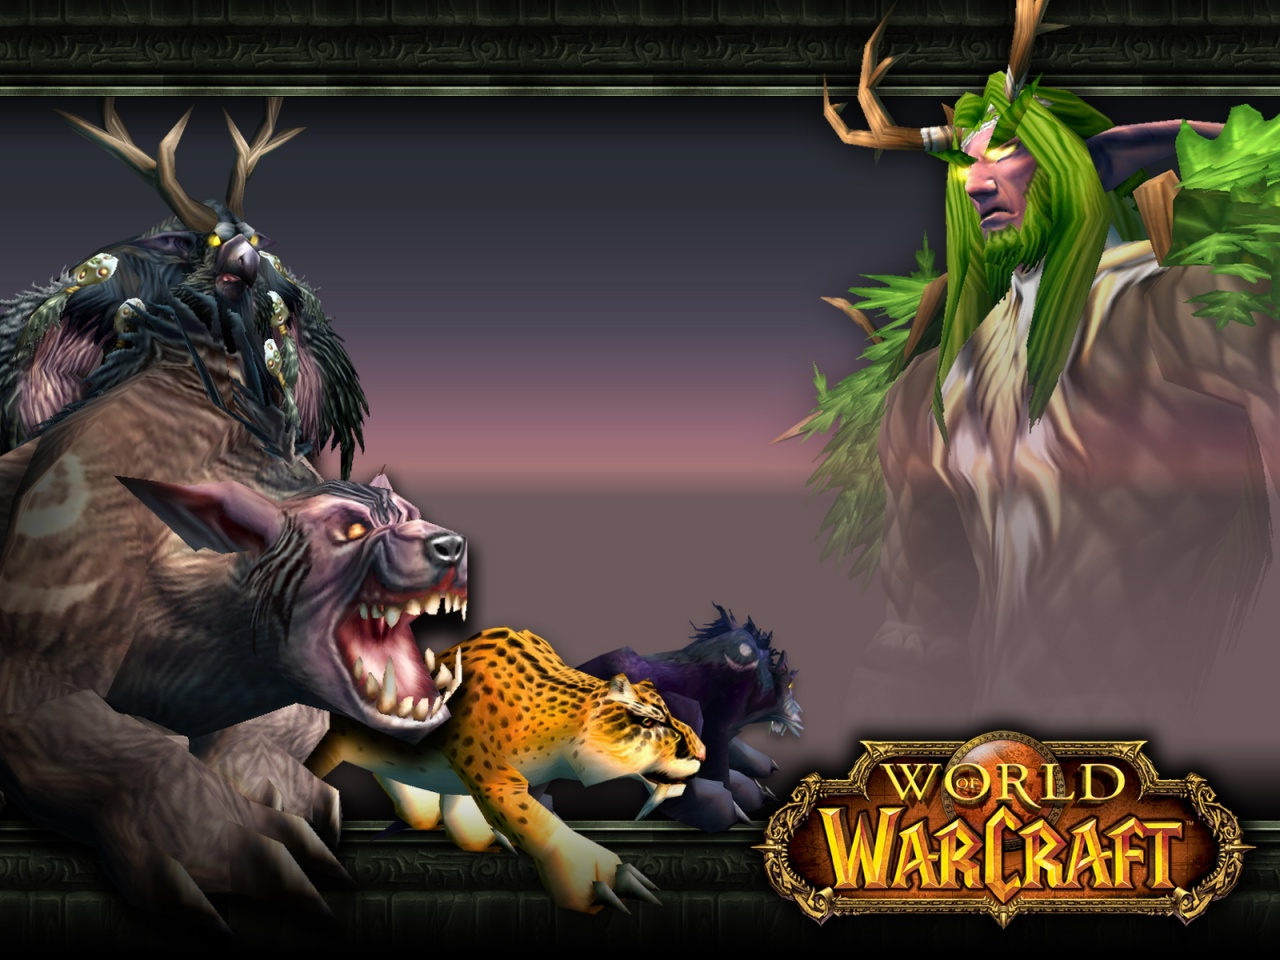 World Of Warcraft Druid Wallpapers 1280x960 337185